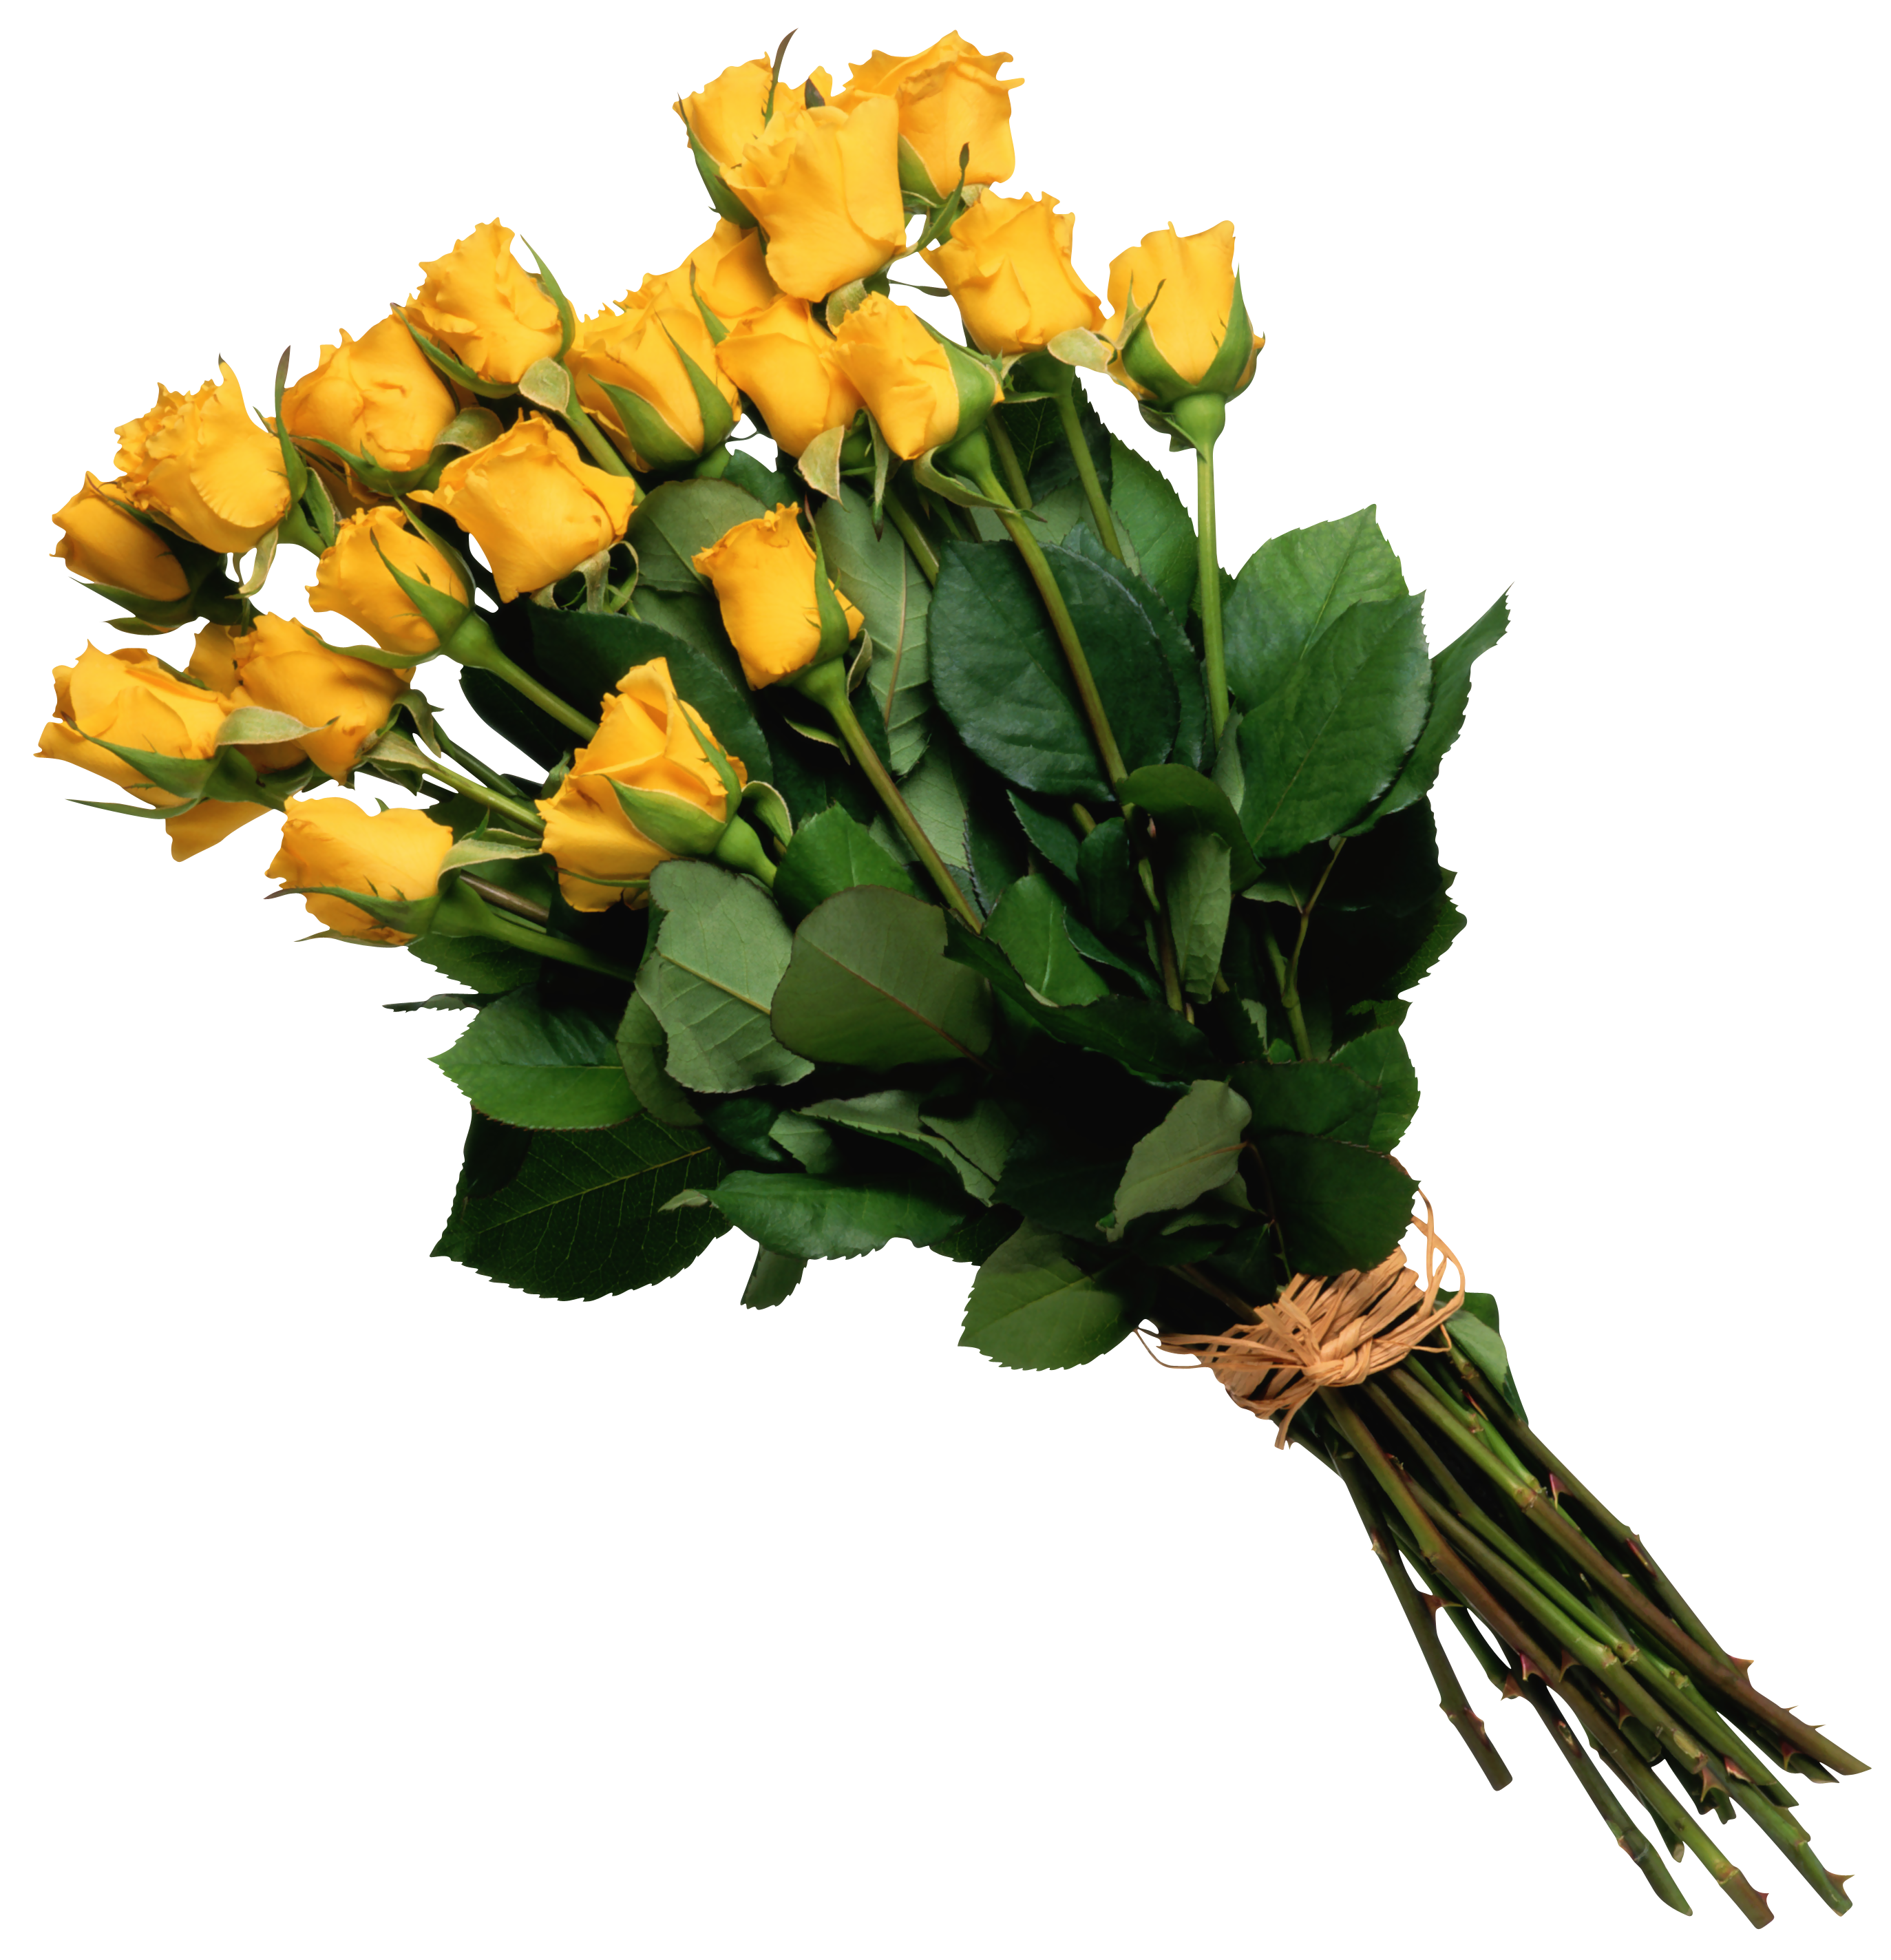 Pin by marija alex on flowers pinterest flower shops and flowers yellow rose bouquetyellow dhlflorist Gallery